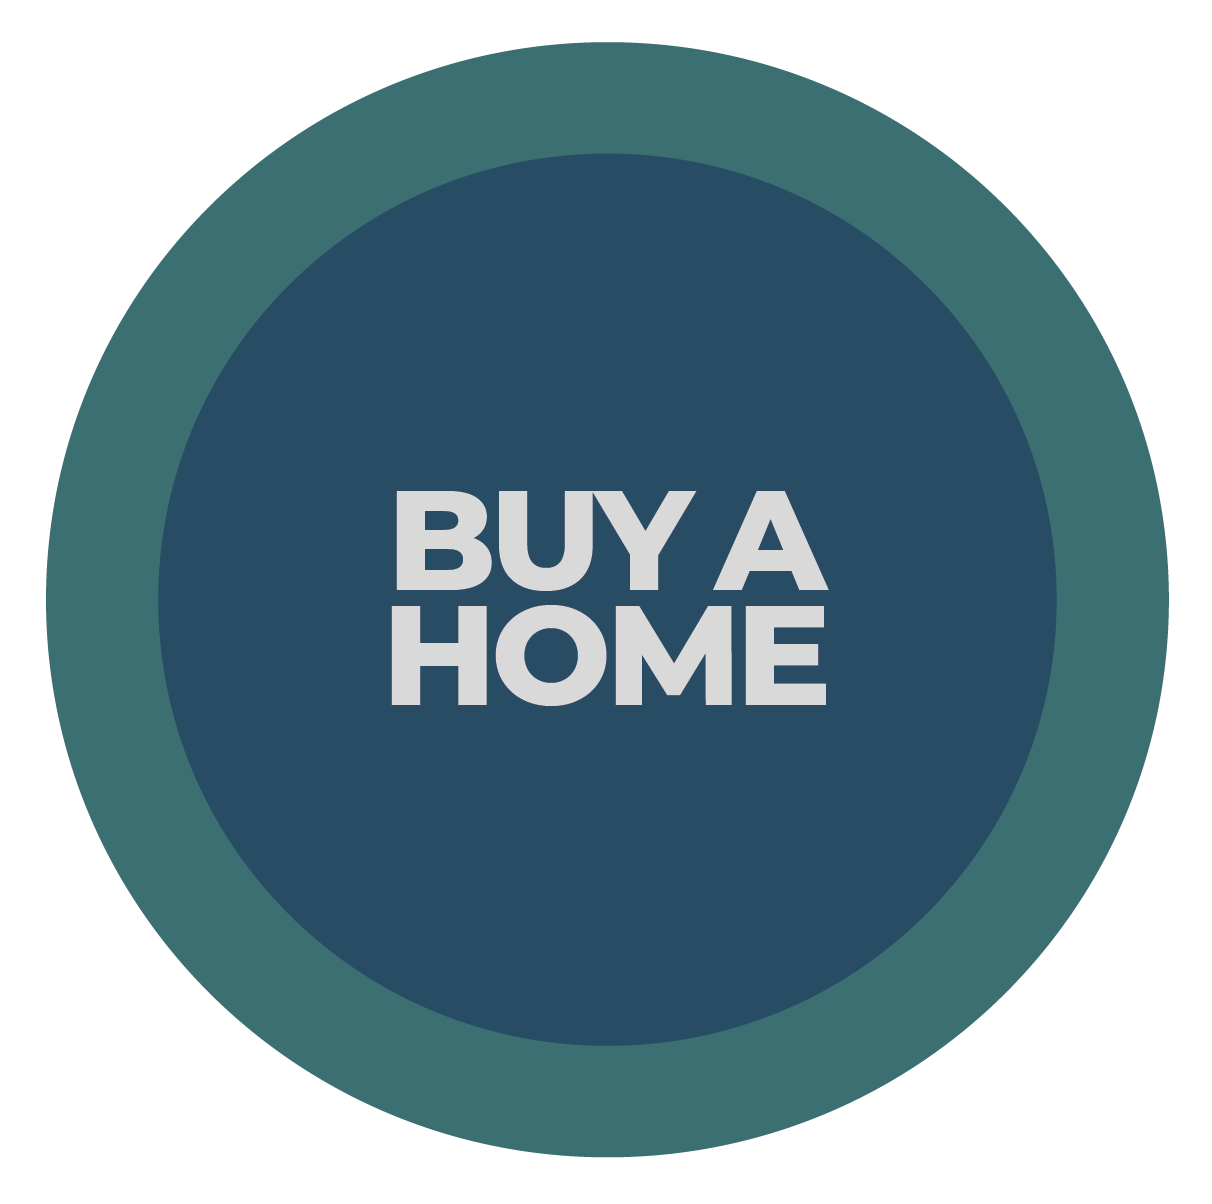 BUY A HOME